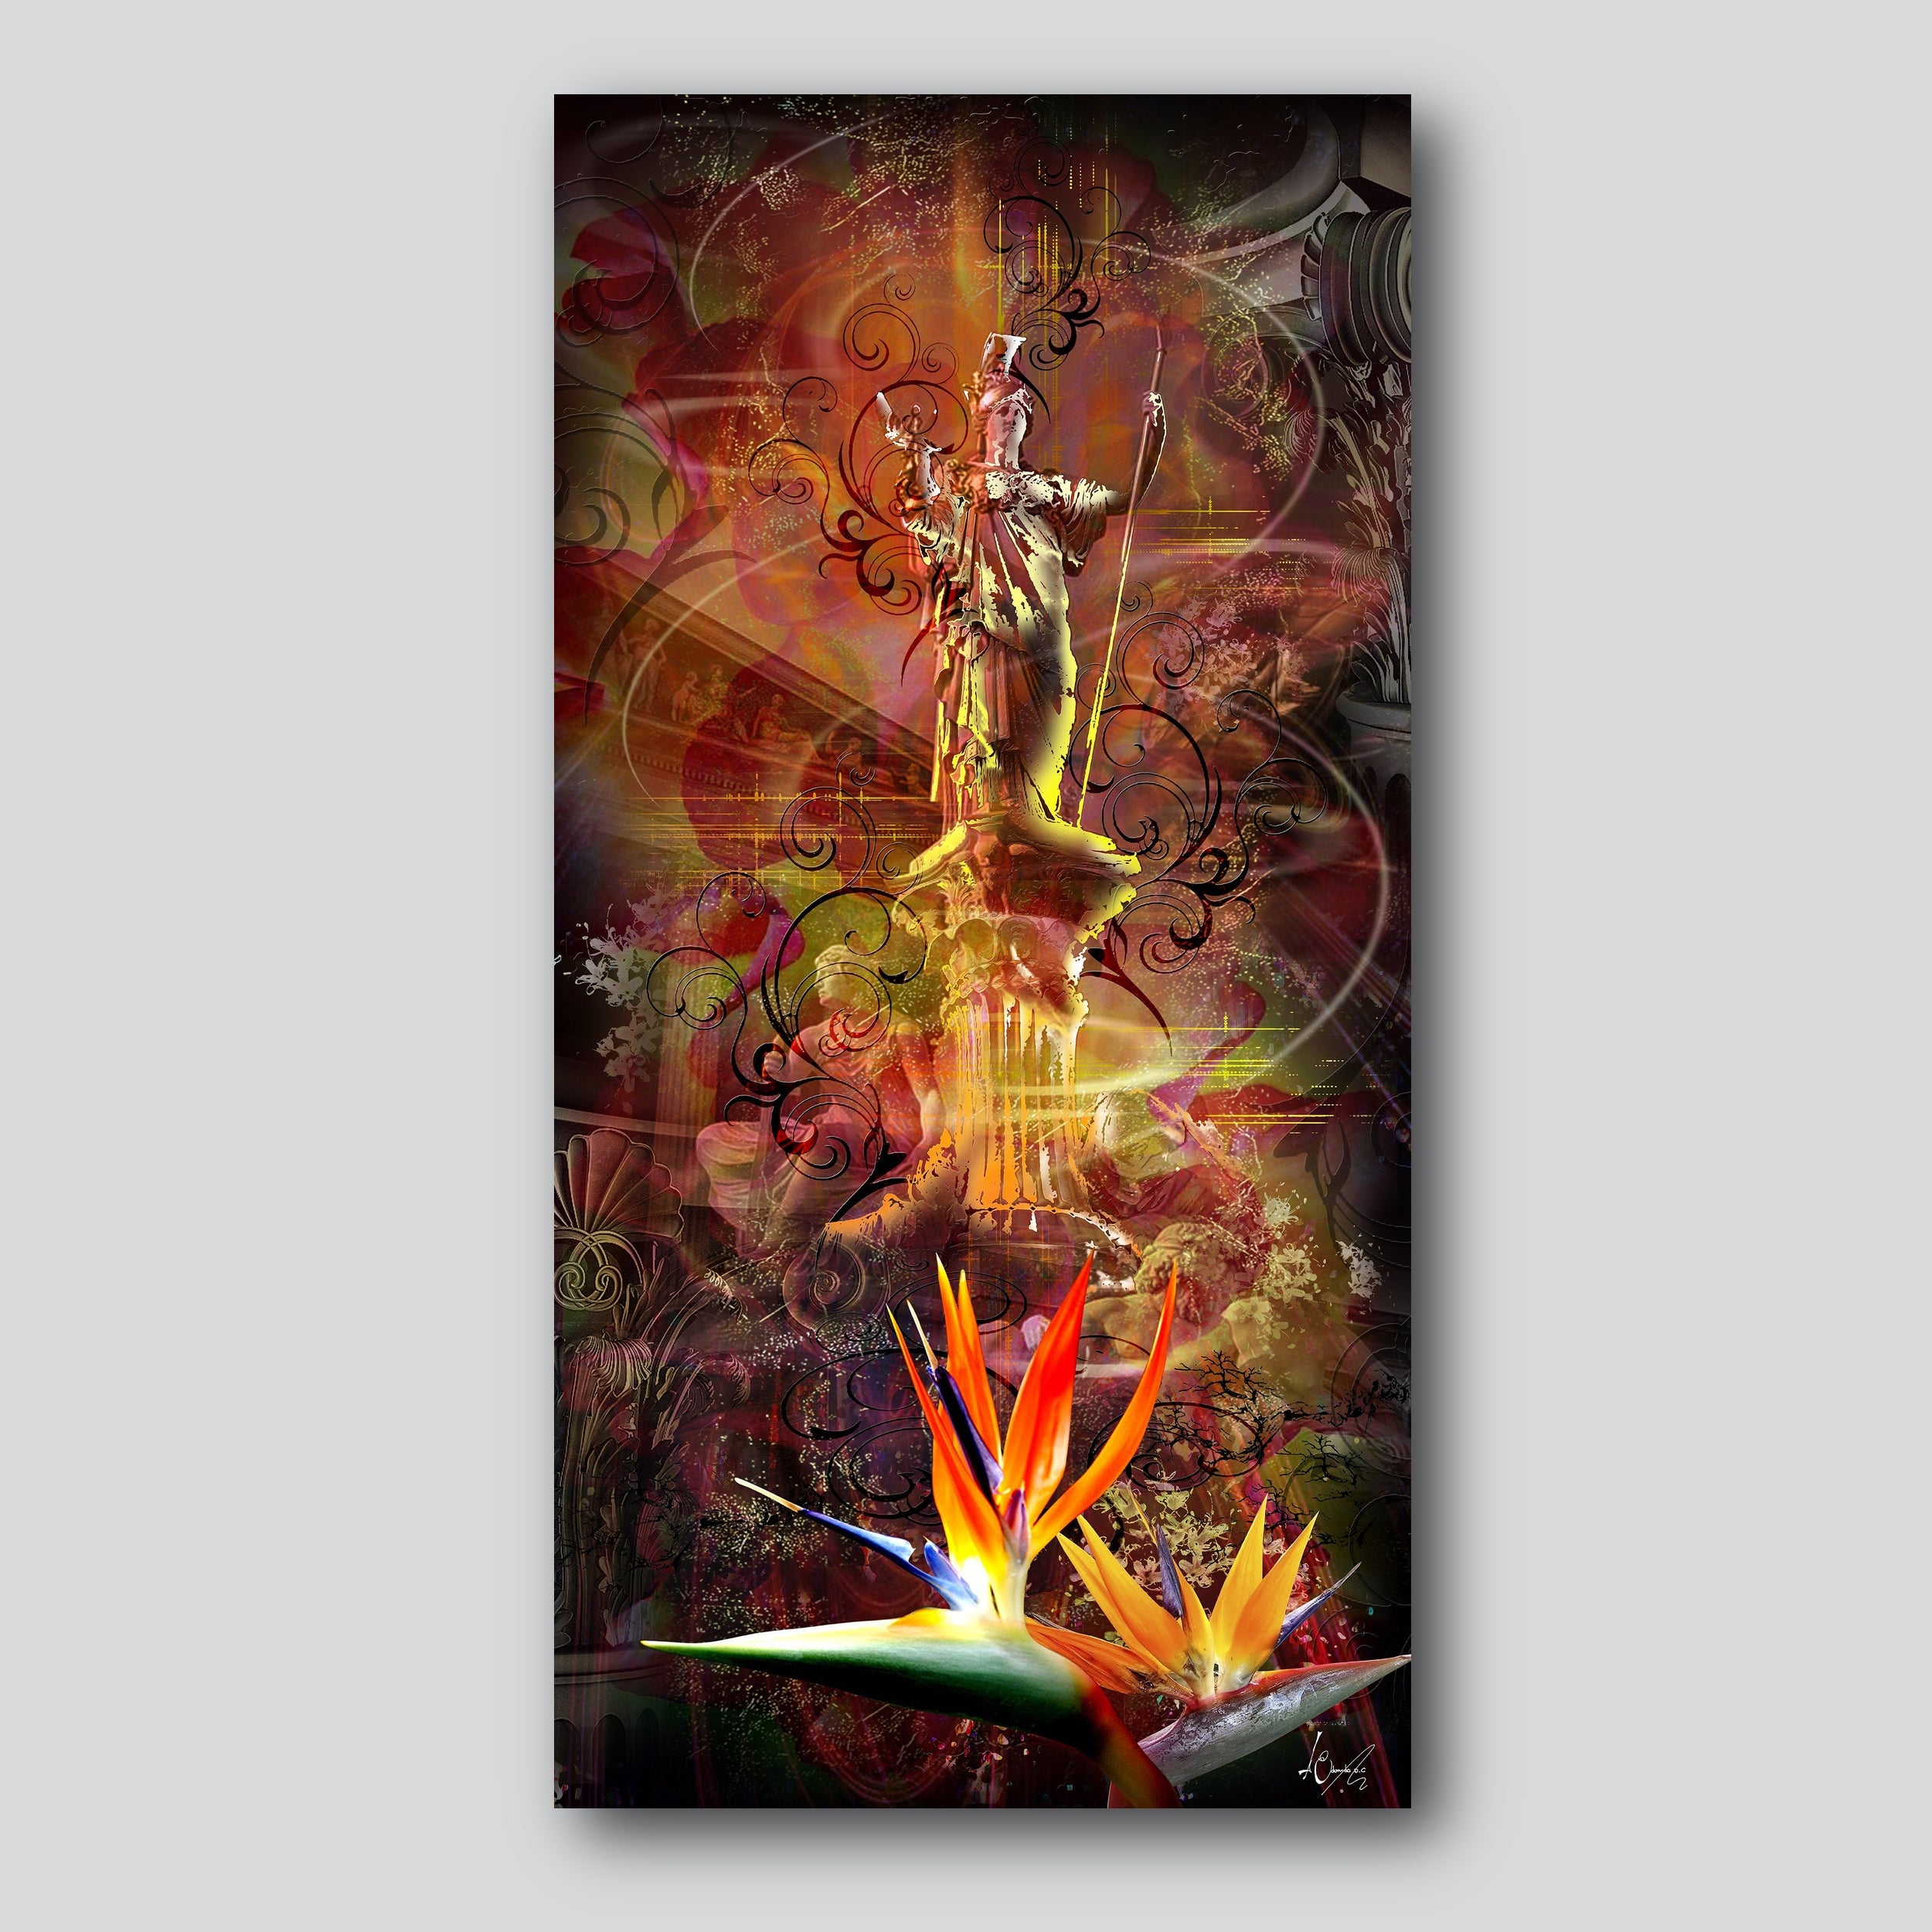 "The Lost Paradise 15"" x 30"" Giclee Printed On High Gloss Metal"